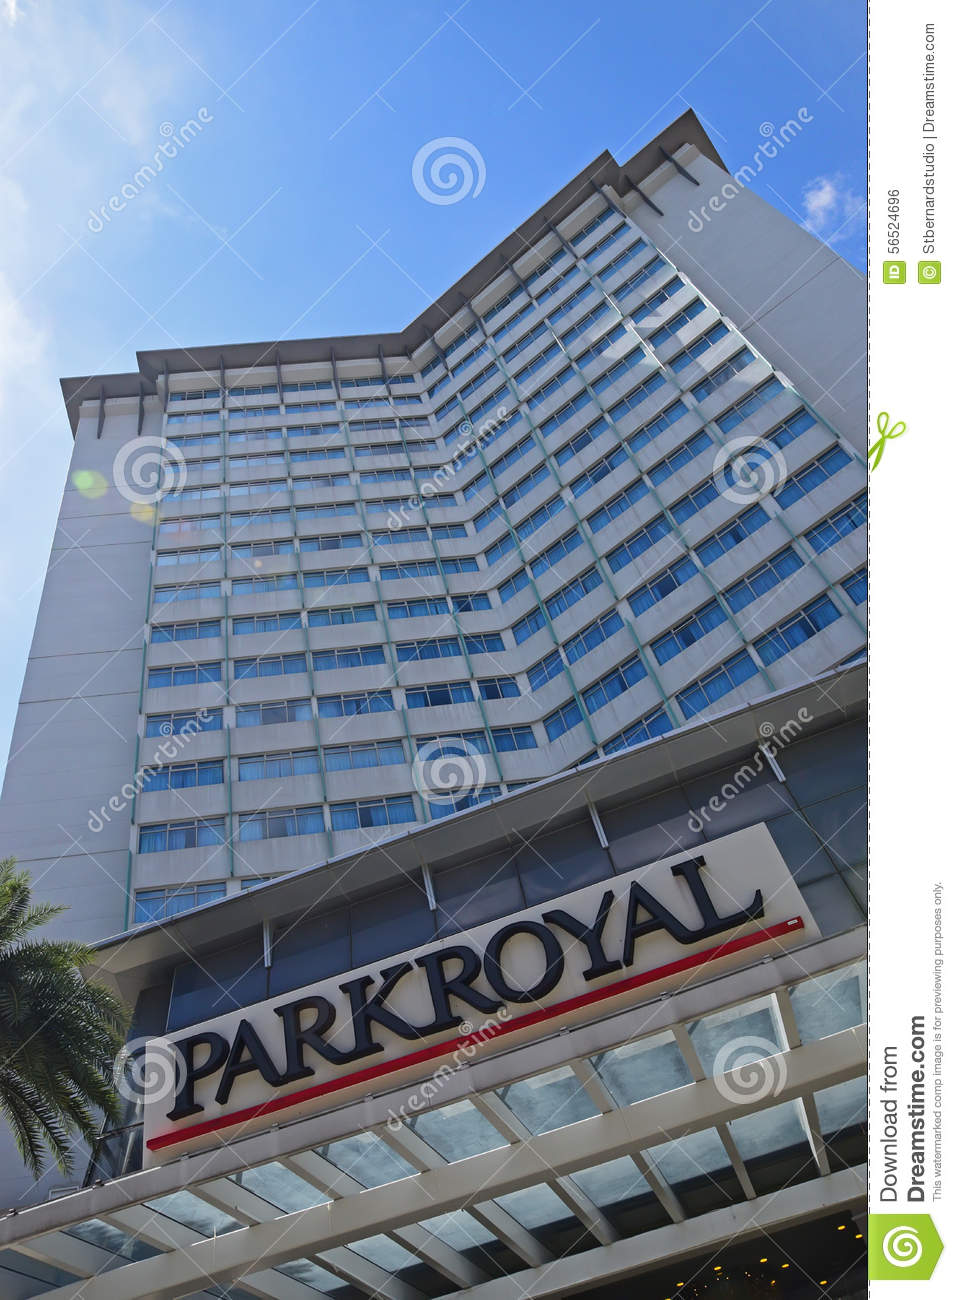 Parkroyal hotel building in singapore at kitchener road managed by pan pacific hotels group